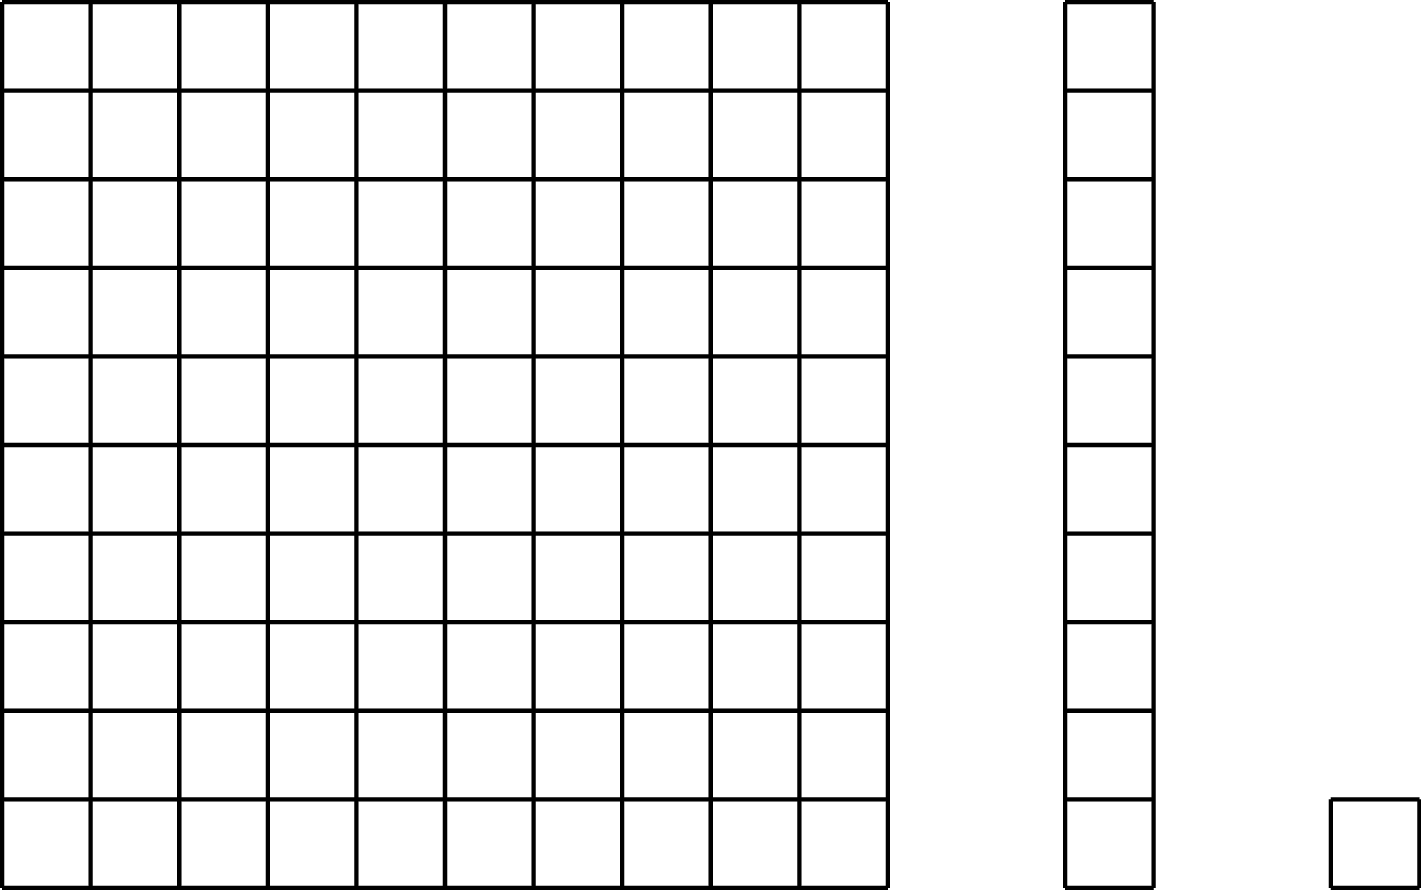 A diagram of a large square, a medium rectangle, and a small square. The medium rectangle is made up of 10 small squares aligned vertically. The large square is made up of 10 medium rectangles placed side by side.